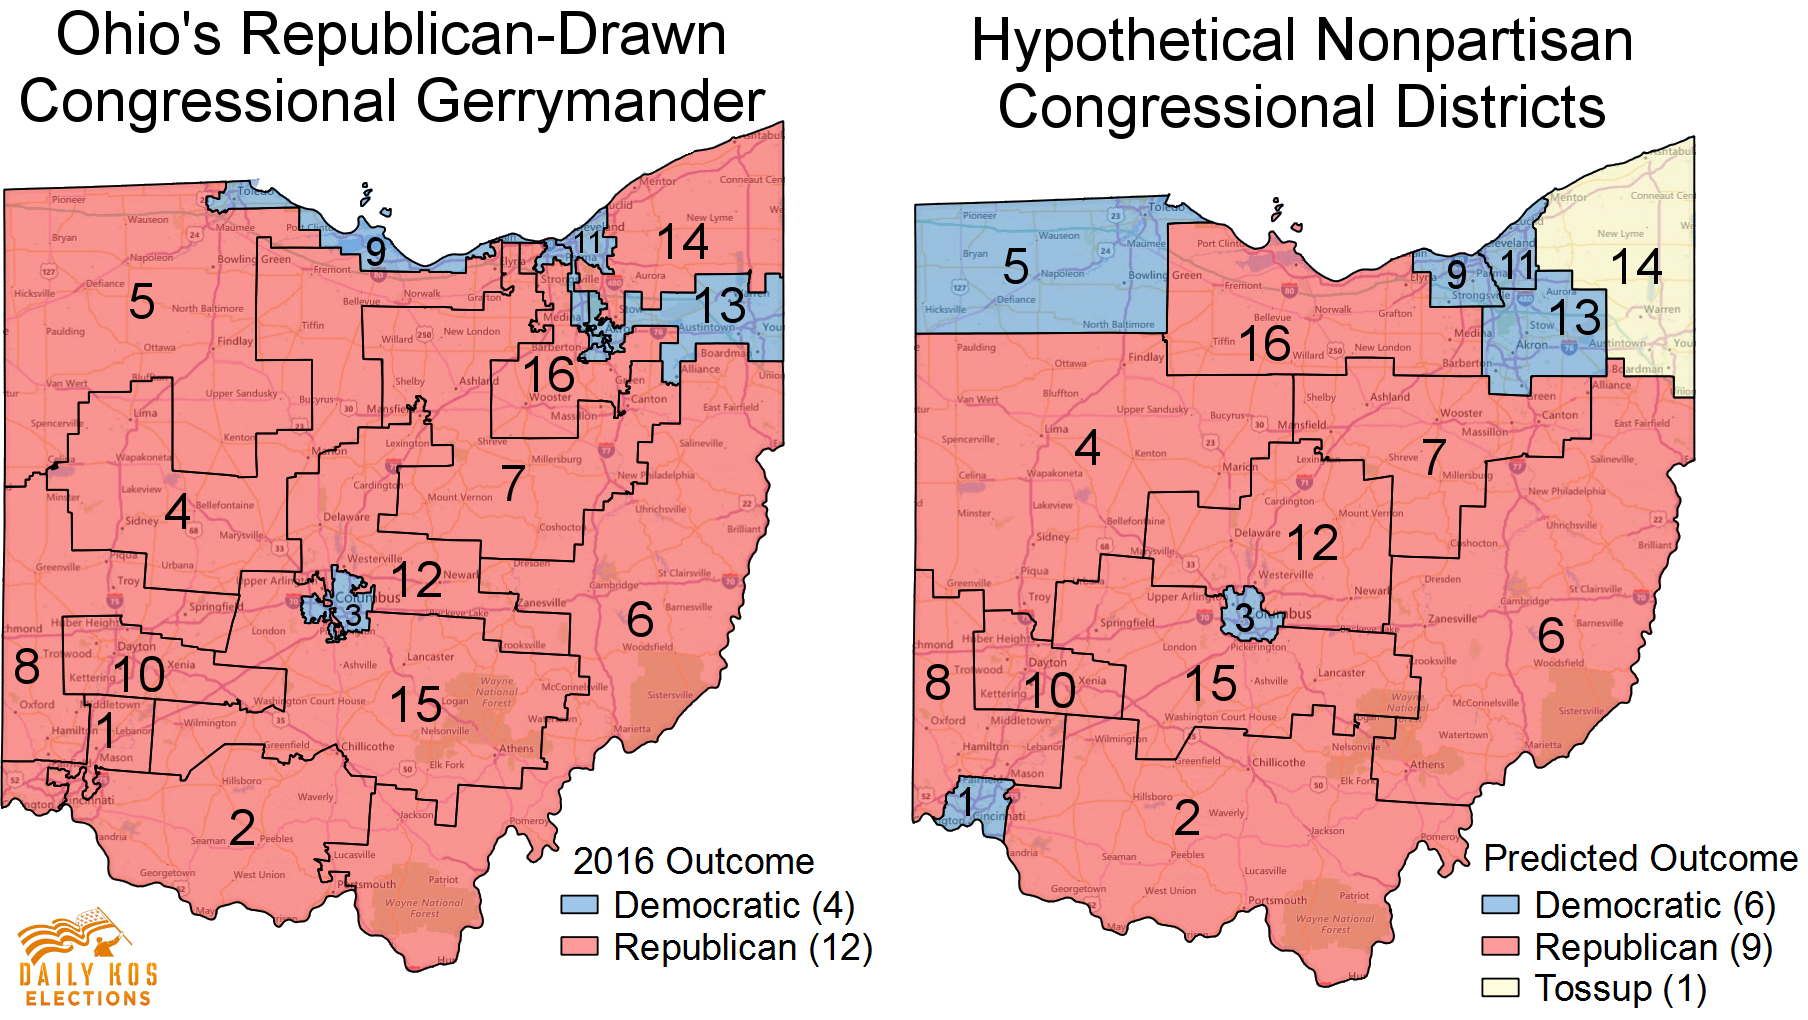 Heres what Ohio might have looked like in 2016 without